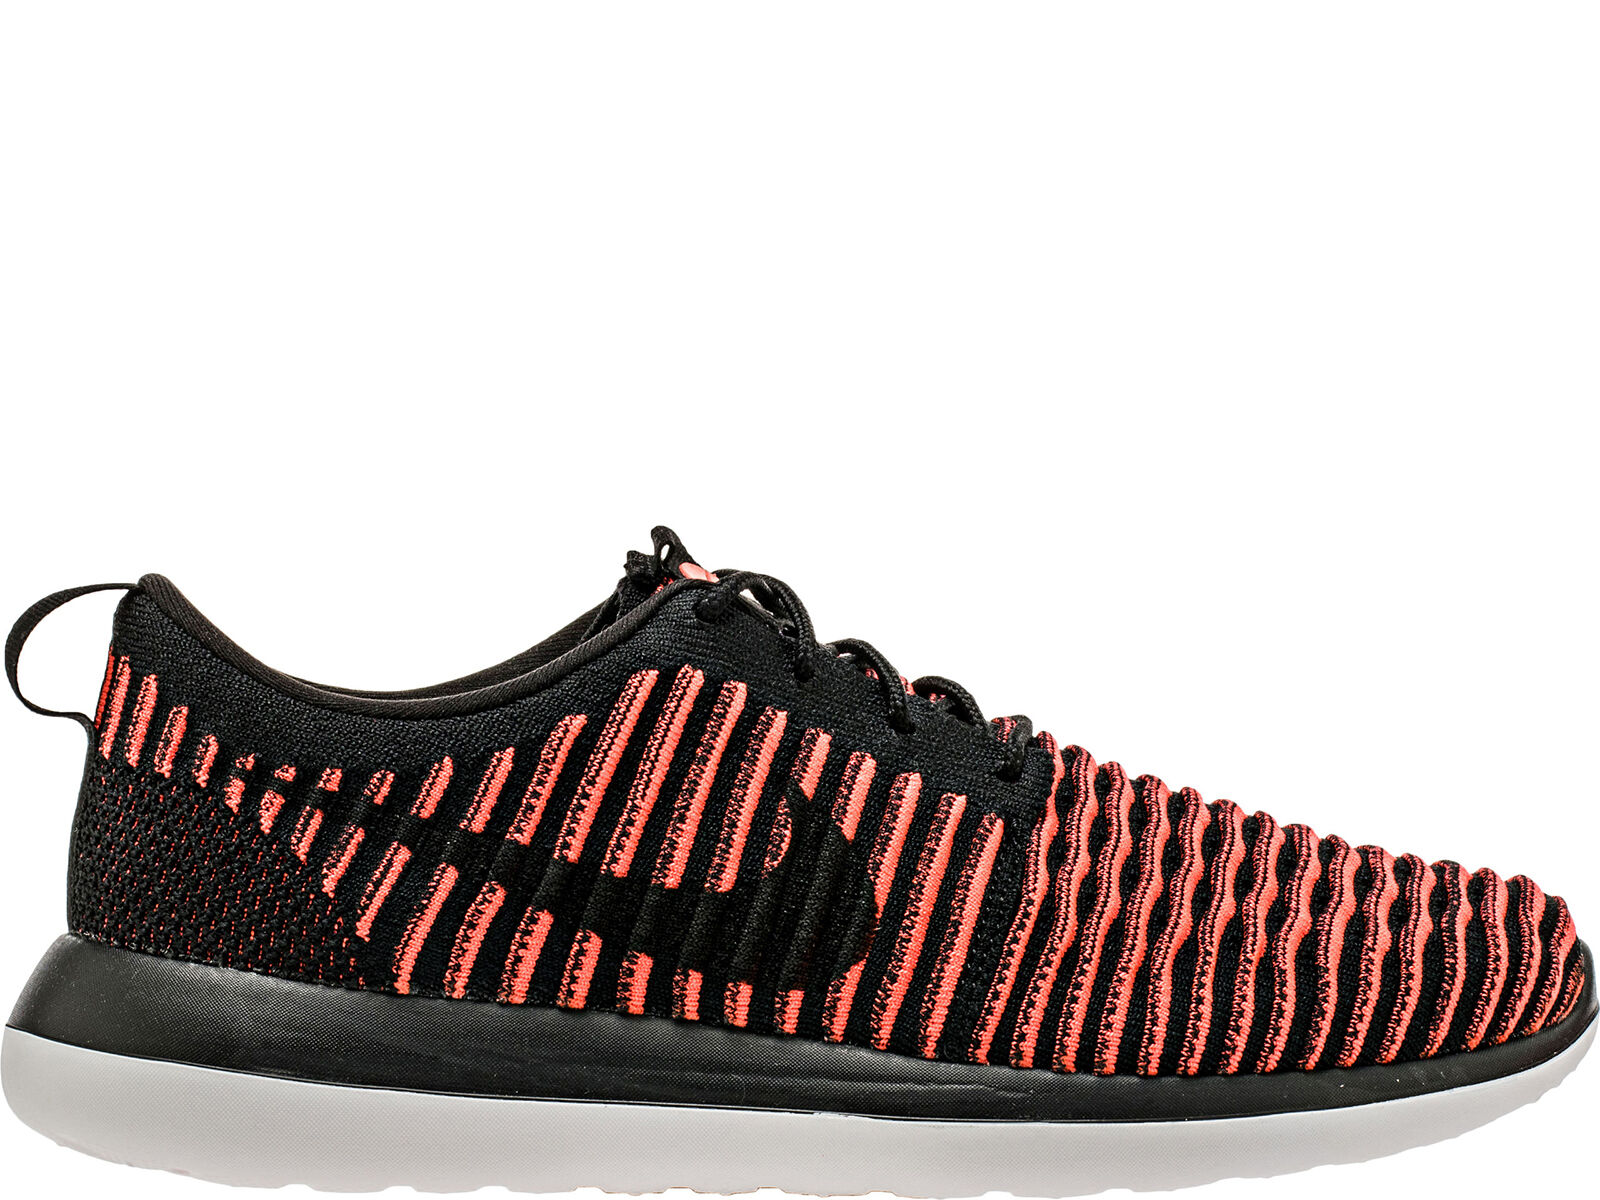 san francisco f0937 abf6d Men s Brand New Nike Roshe Roshe Roshe Two Flyknit Athletic Design Era  Sneakers  844833 006